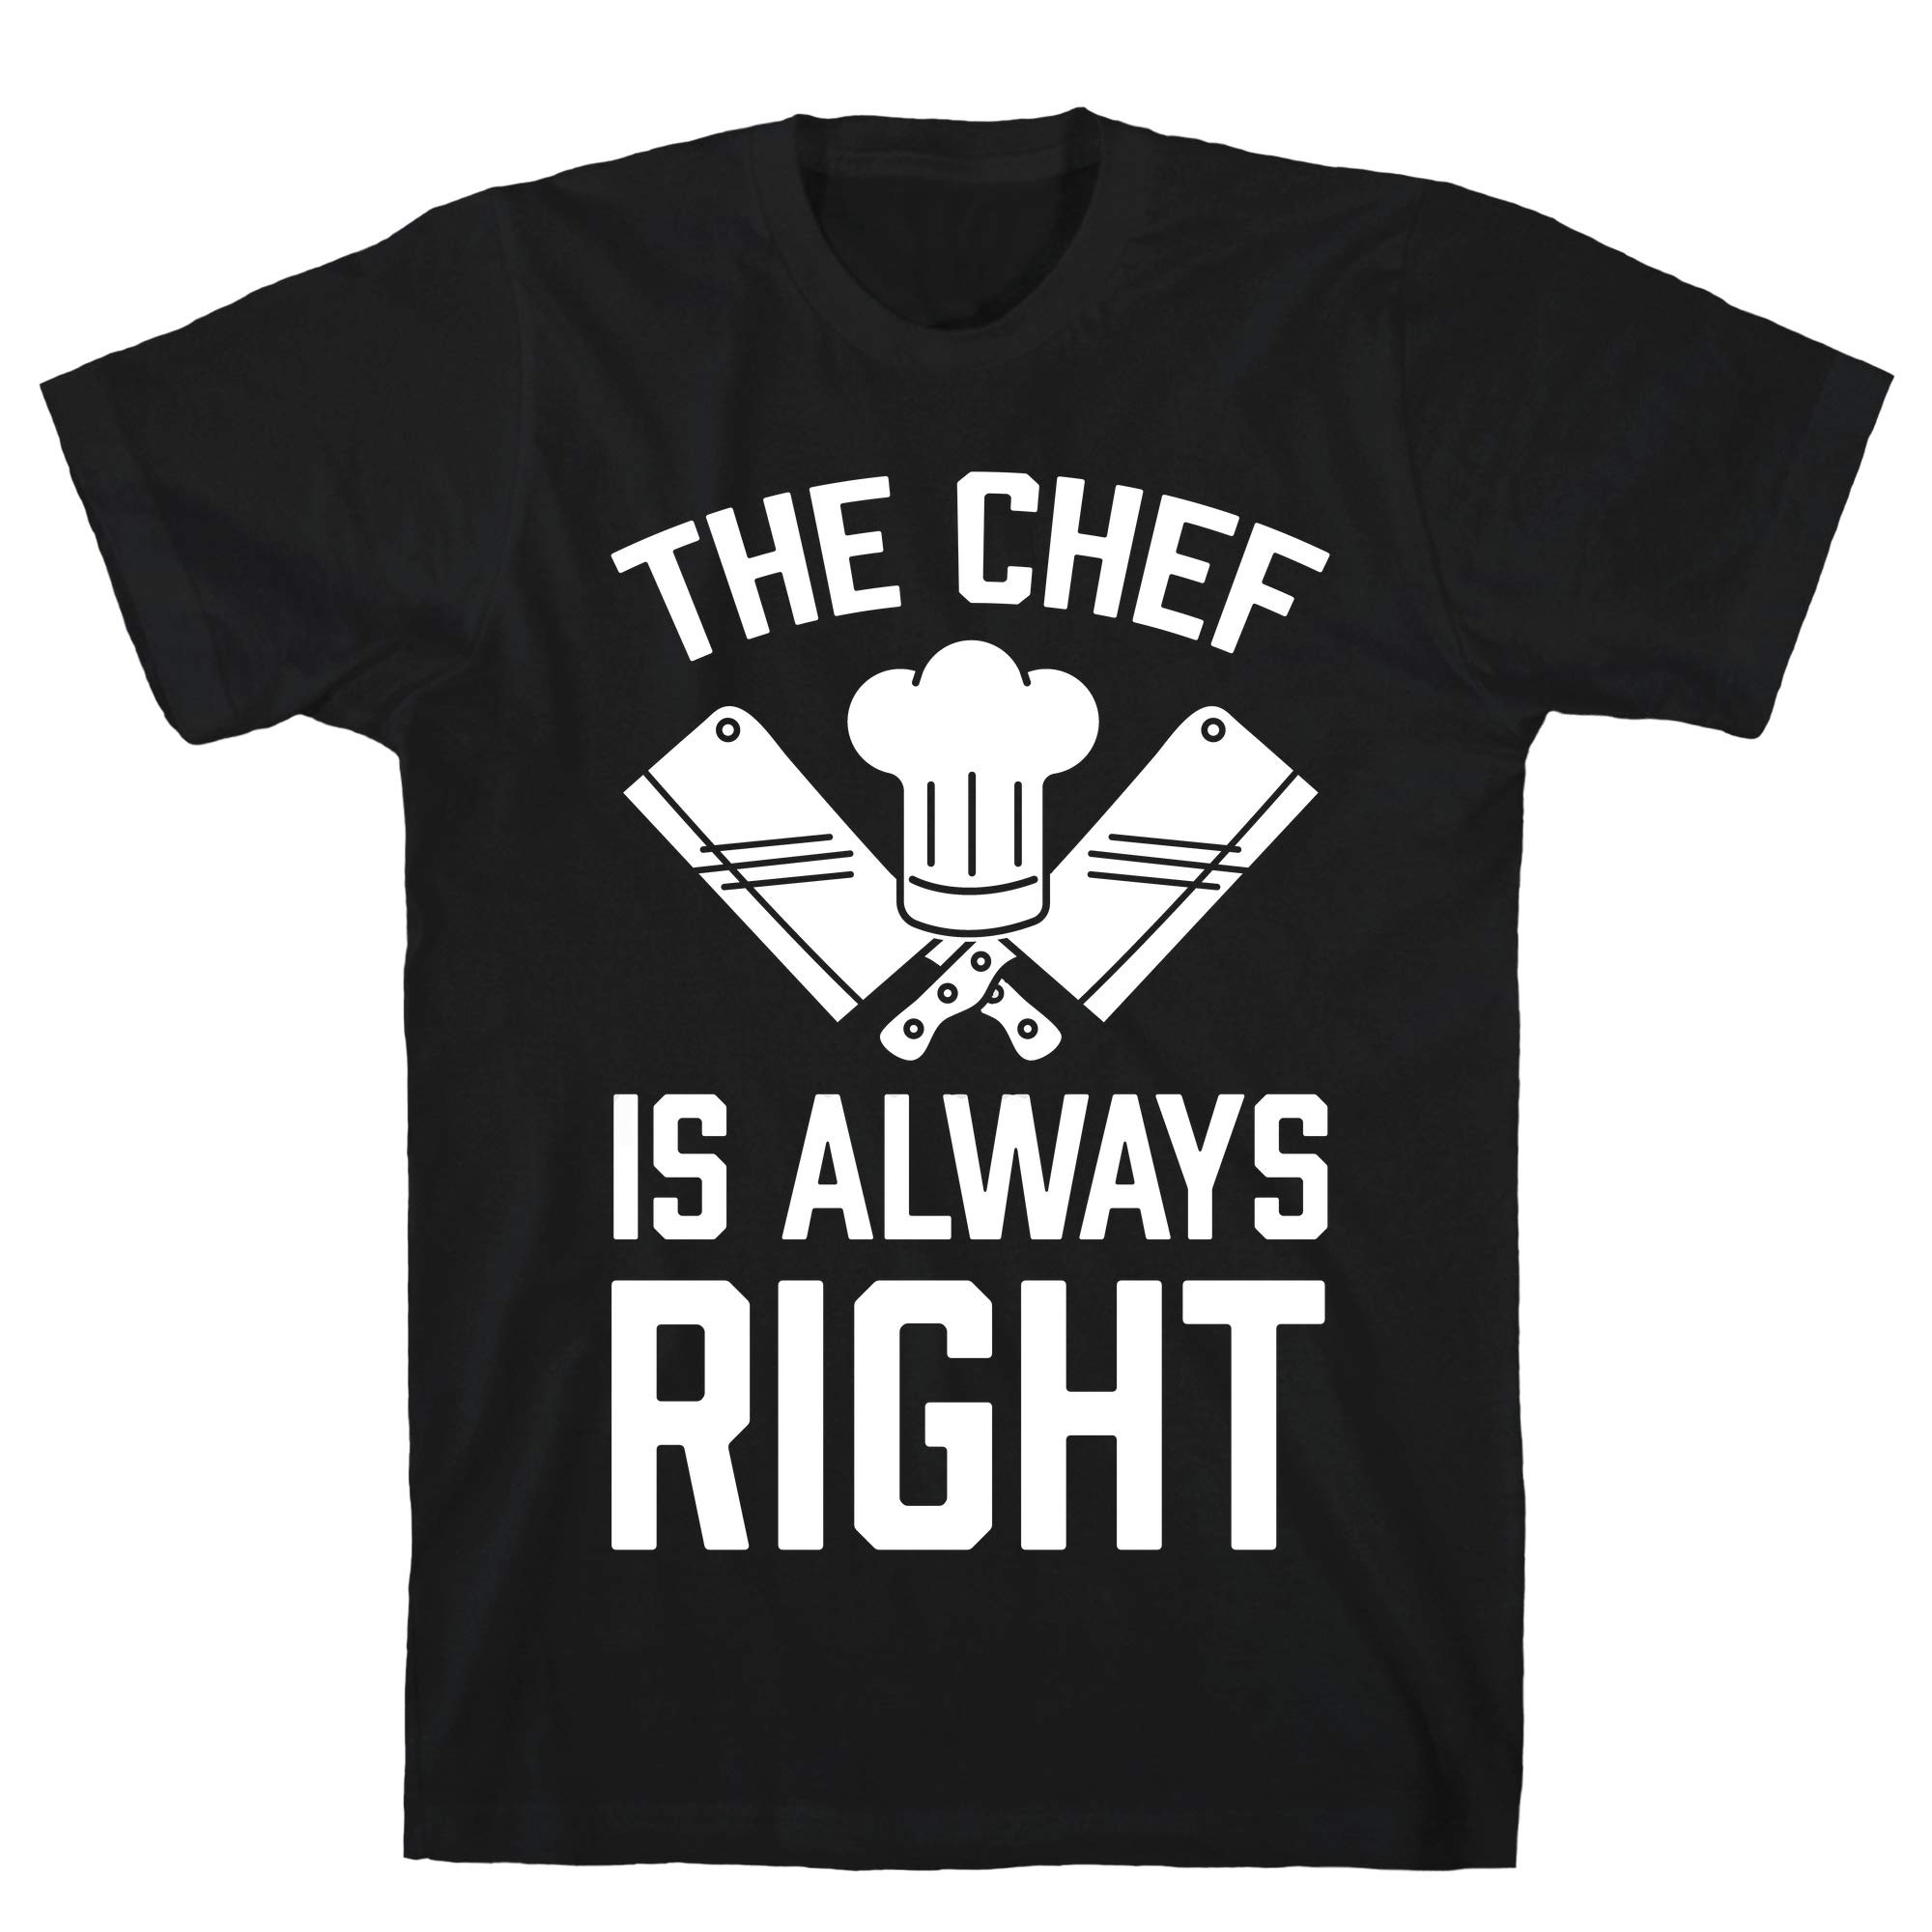 The Chef Is Always Right Tee 9168 Shirts